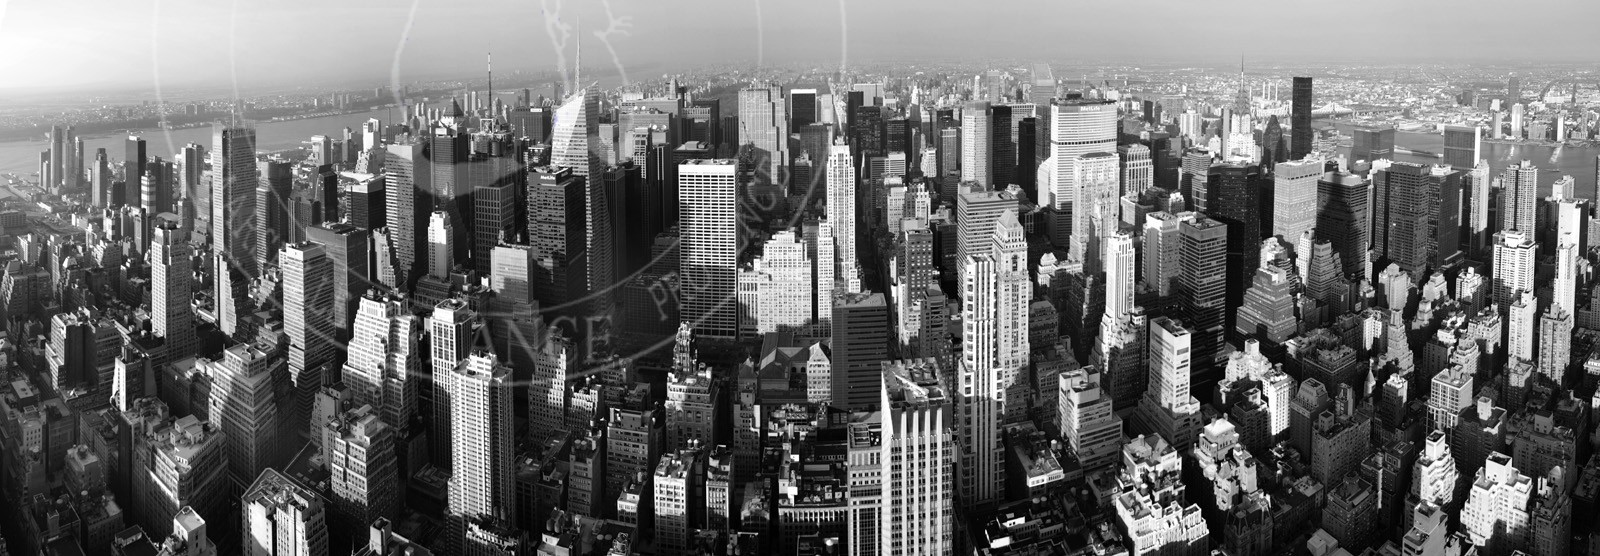 ref nyc 95 299 panorama 33x95 building sur new york city. Black Bedroom Furniture Sets. Home Design Ideas